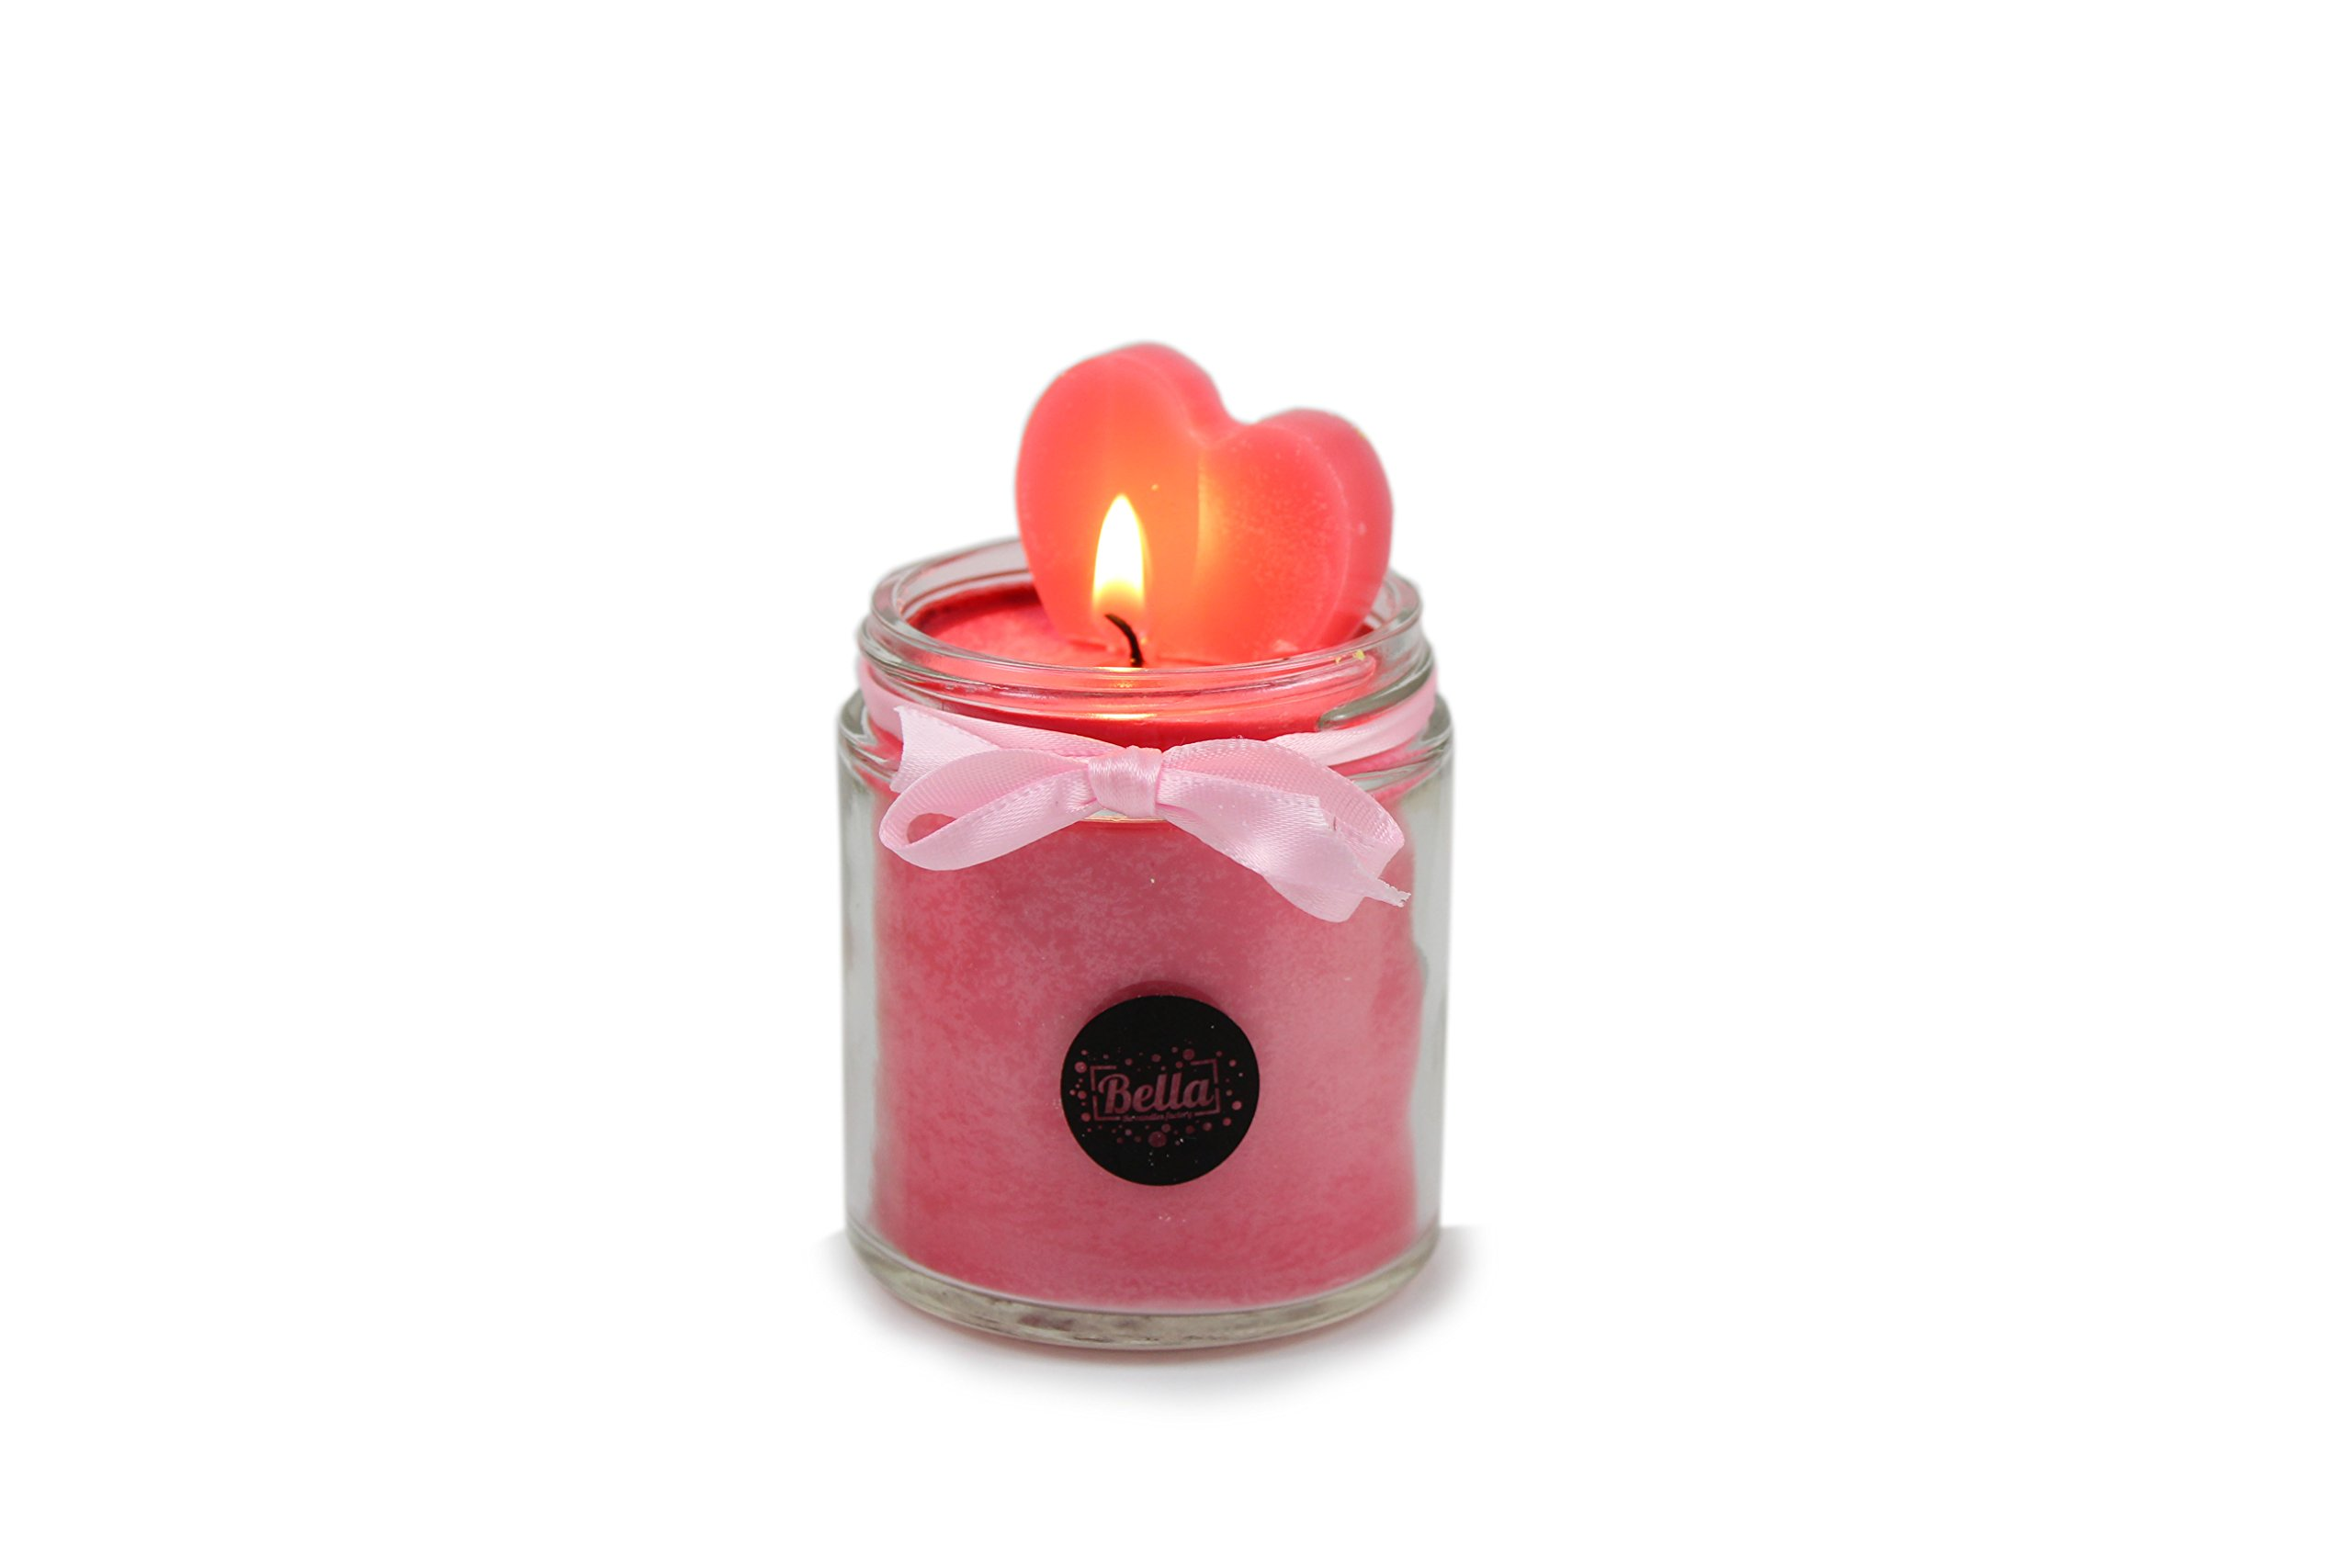 Bella Candle Factory My Sweet Love Handmade Candles – Fun Designer Scented Candles